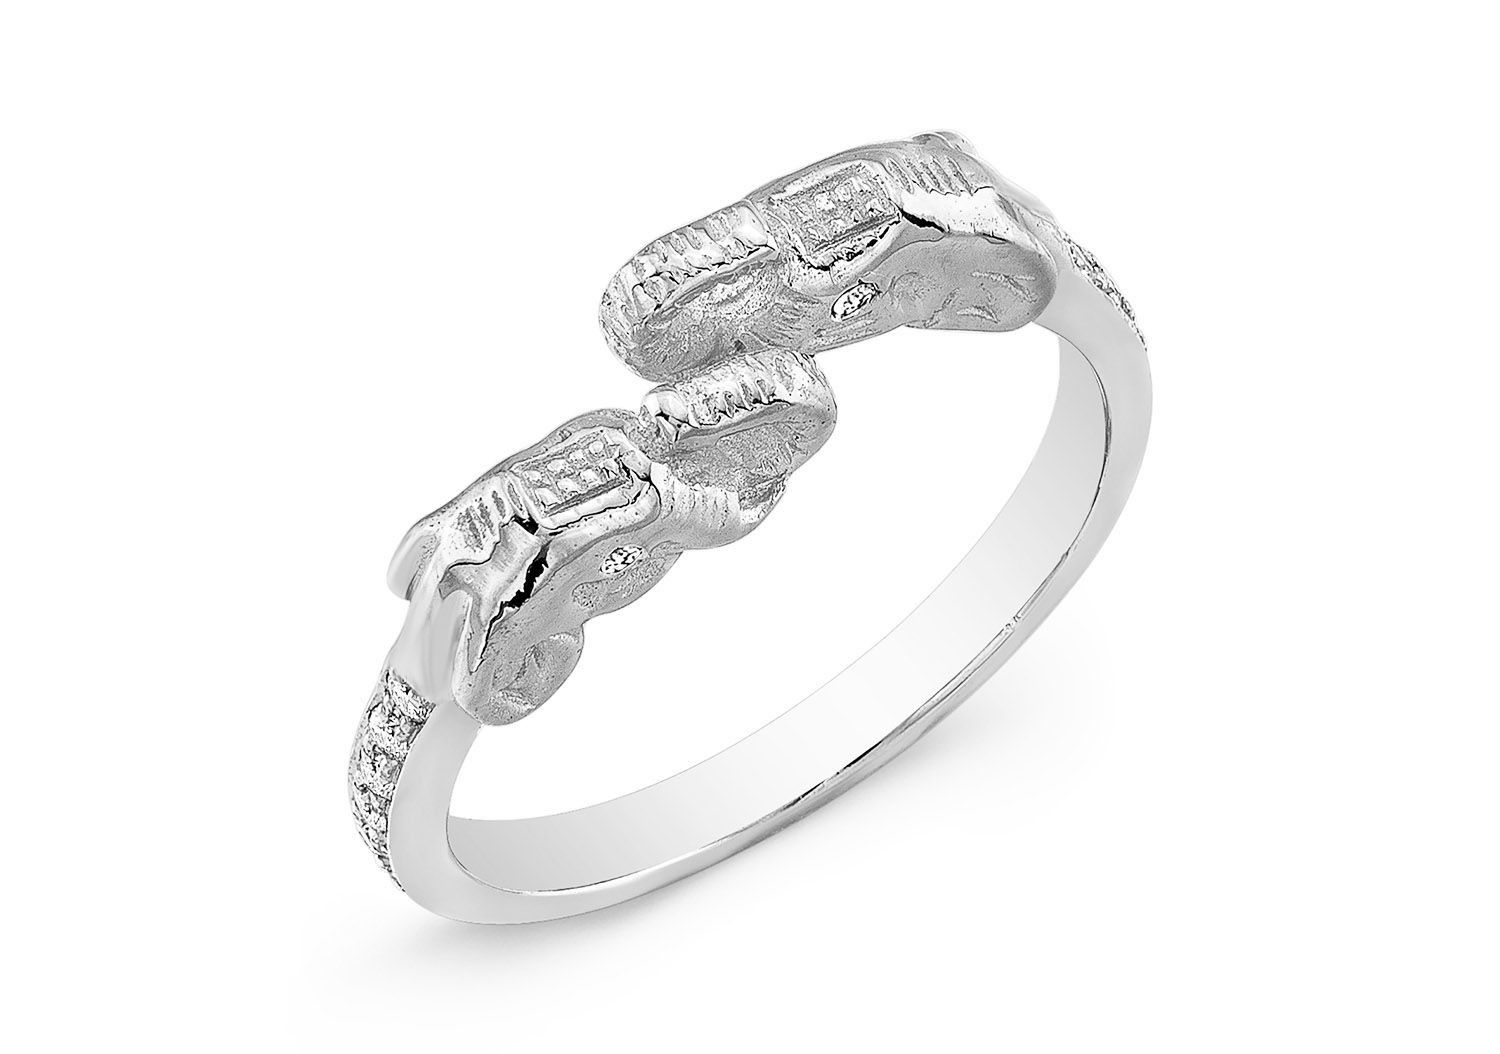 rings lucky double s sterling engagement silver elephant eve addiction ring